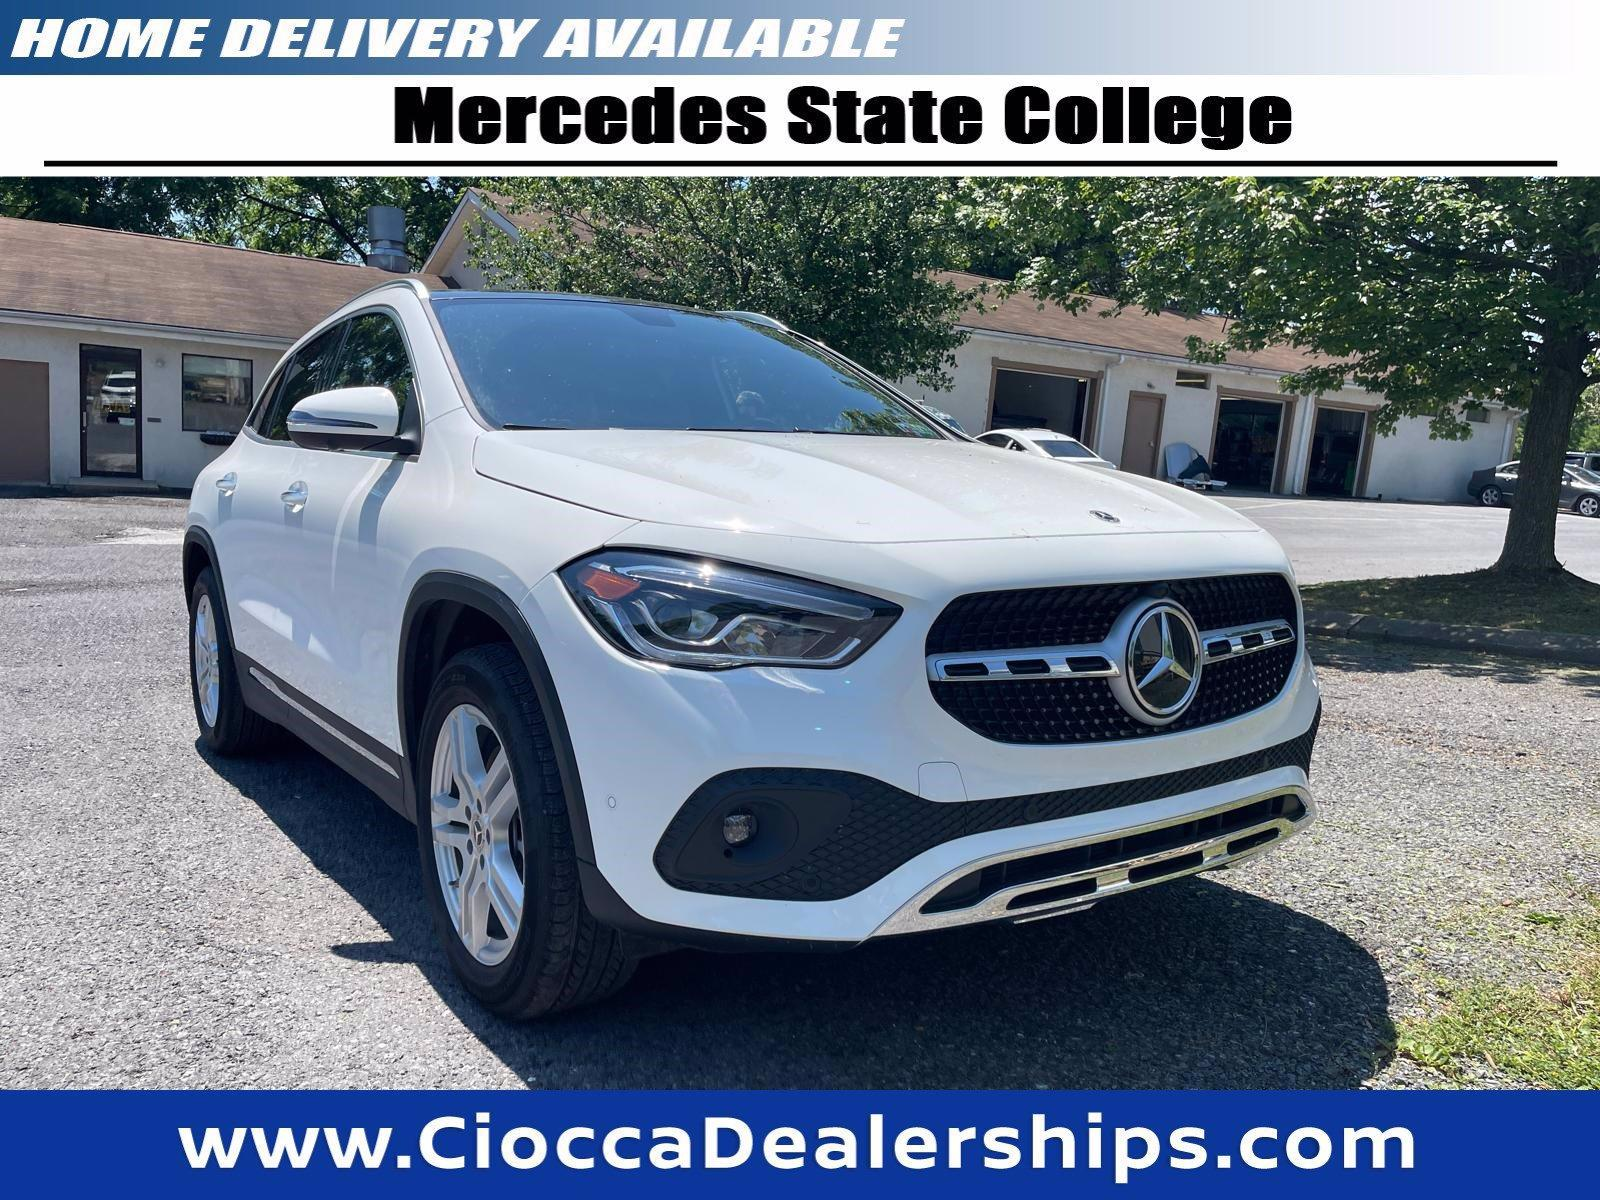 2021 Mercedes-Benz GLA Vehicle Photo in State College, PA 16801